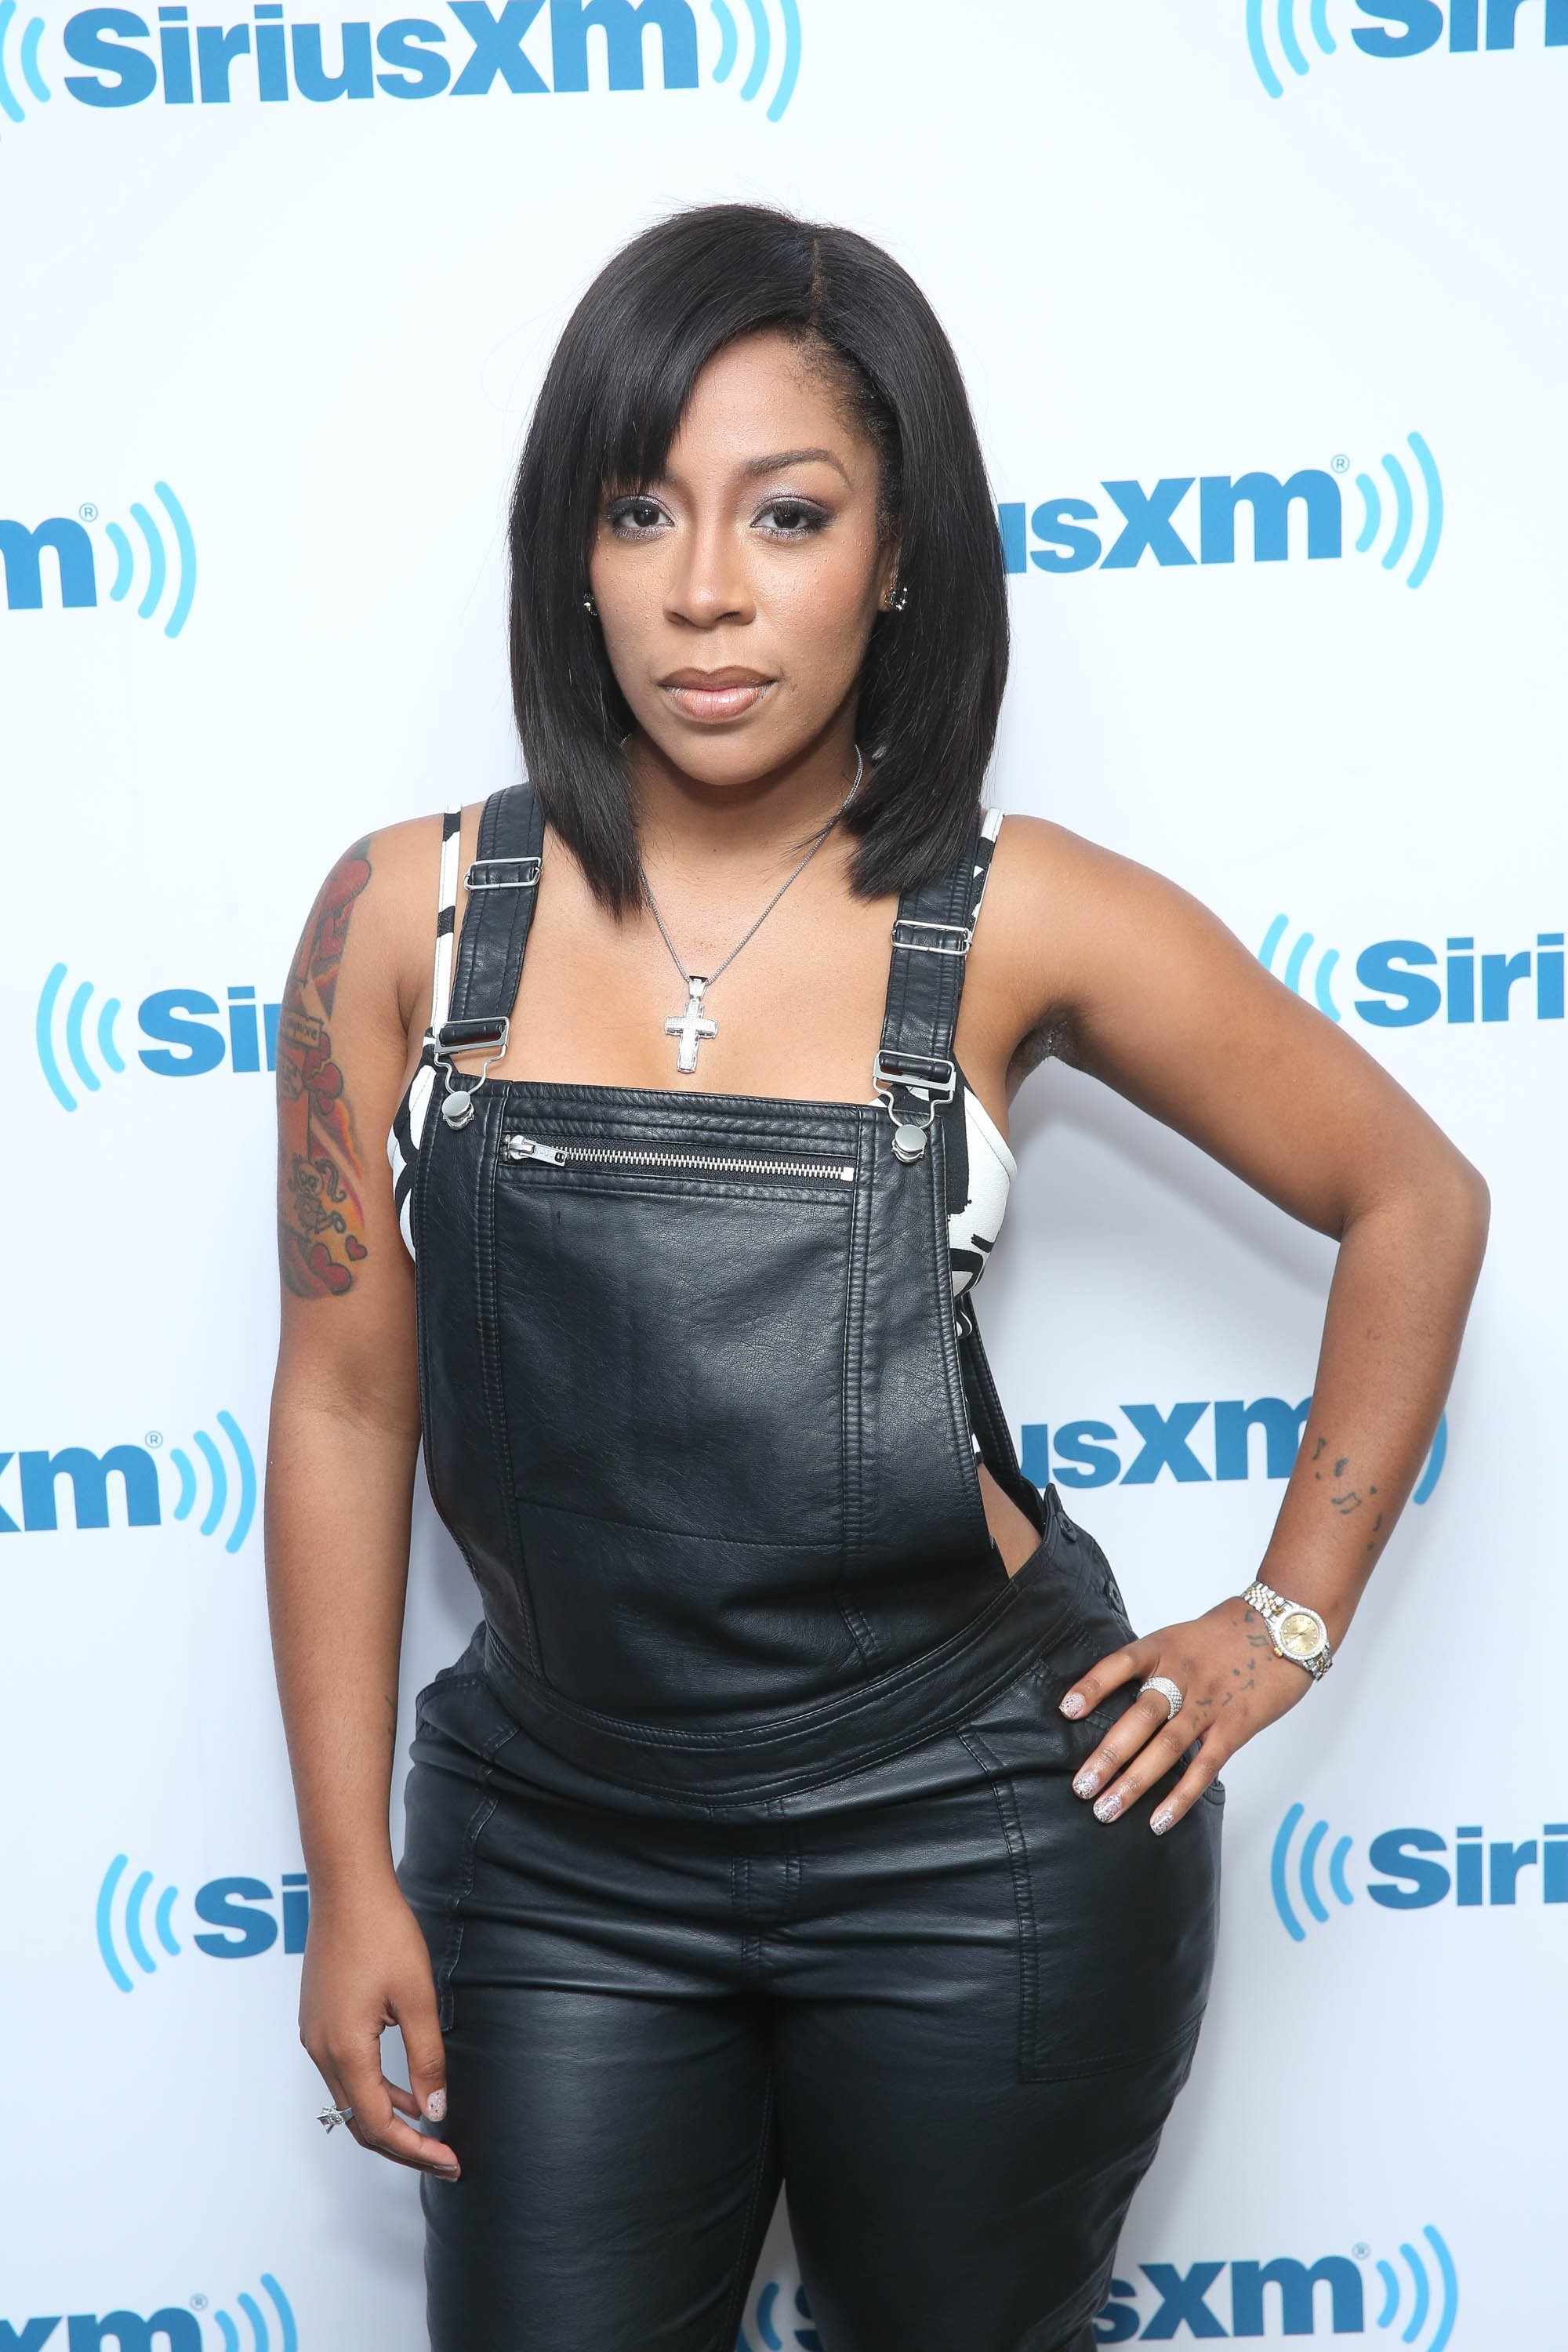 K. Michelle at a radio interview at the SiriusXM Studios in September 2014. | Photo: Getty Images